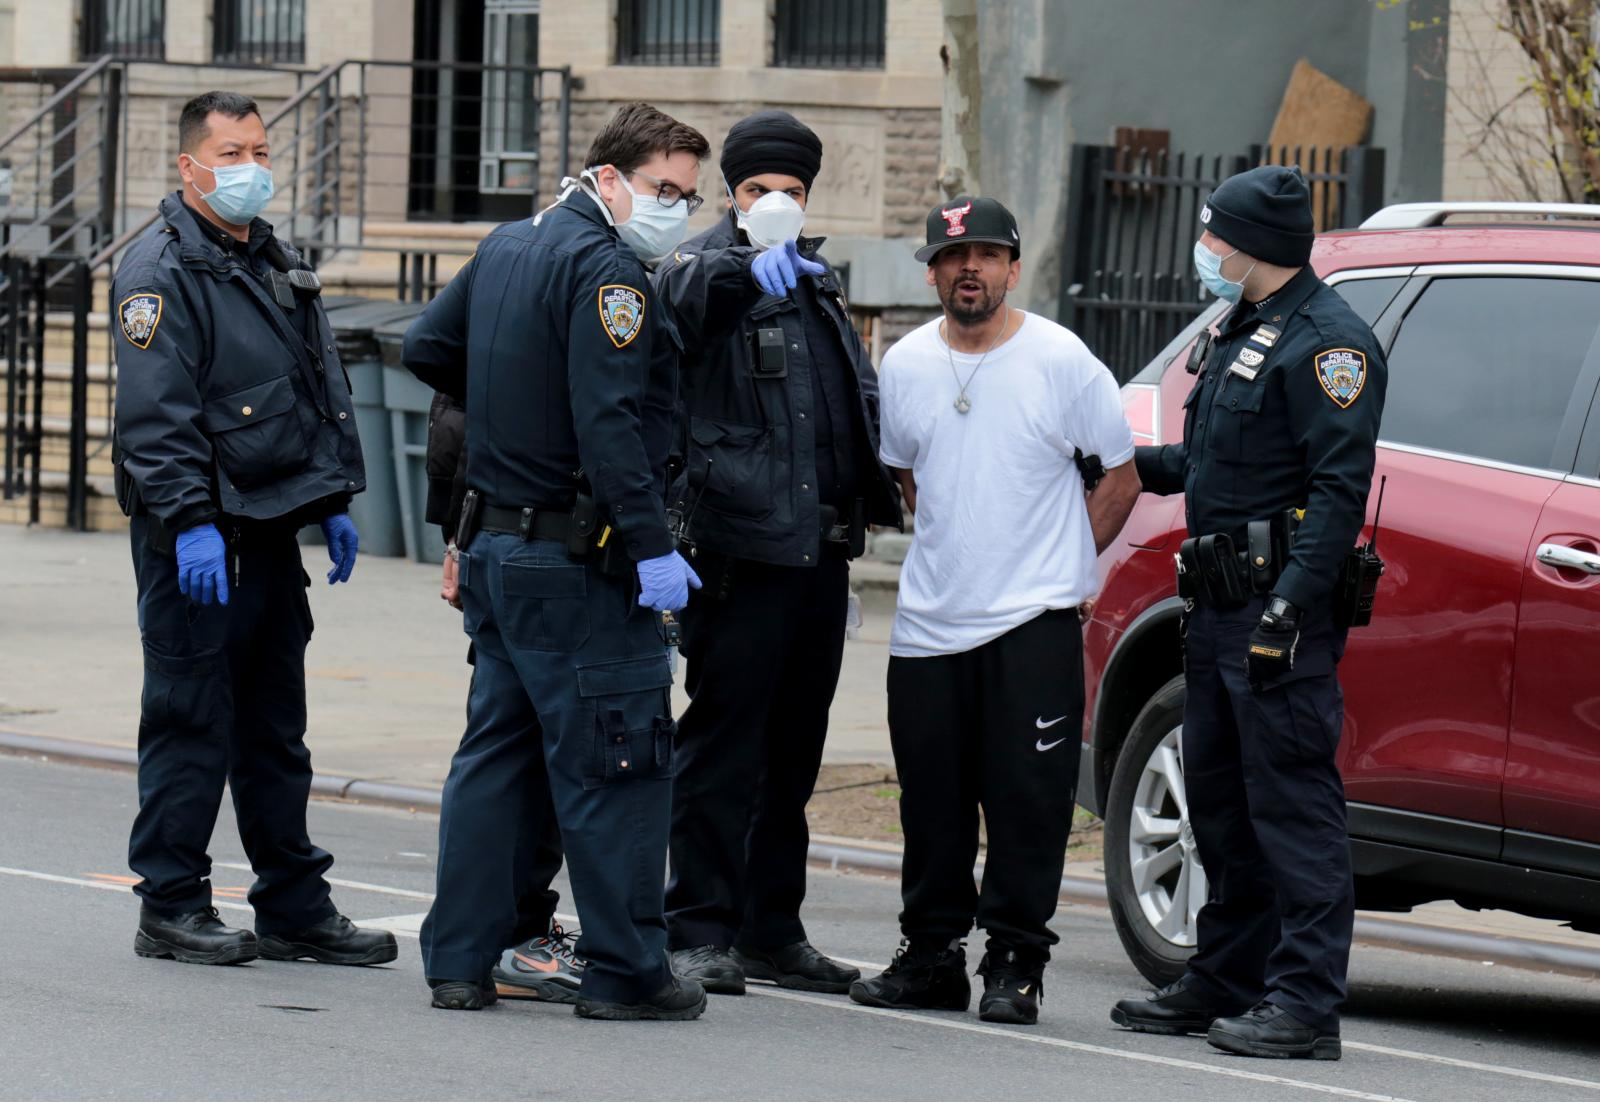 New York - April 21, 2020 -- NYPD officers from the 79 and 81st Precincts arrest a unidentified suspect accused of firing several shots on 641 Vernon Avenue and fleeing. The suspects were arrested on Lewis and Myrtle Avenues. NYPD Officers during arrests can not practice social distancing during the coronavirus pandemic outbreak. (Luiz C. Ribeiro for New York Daily News)